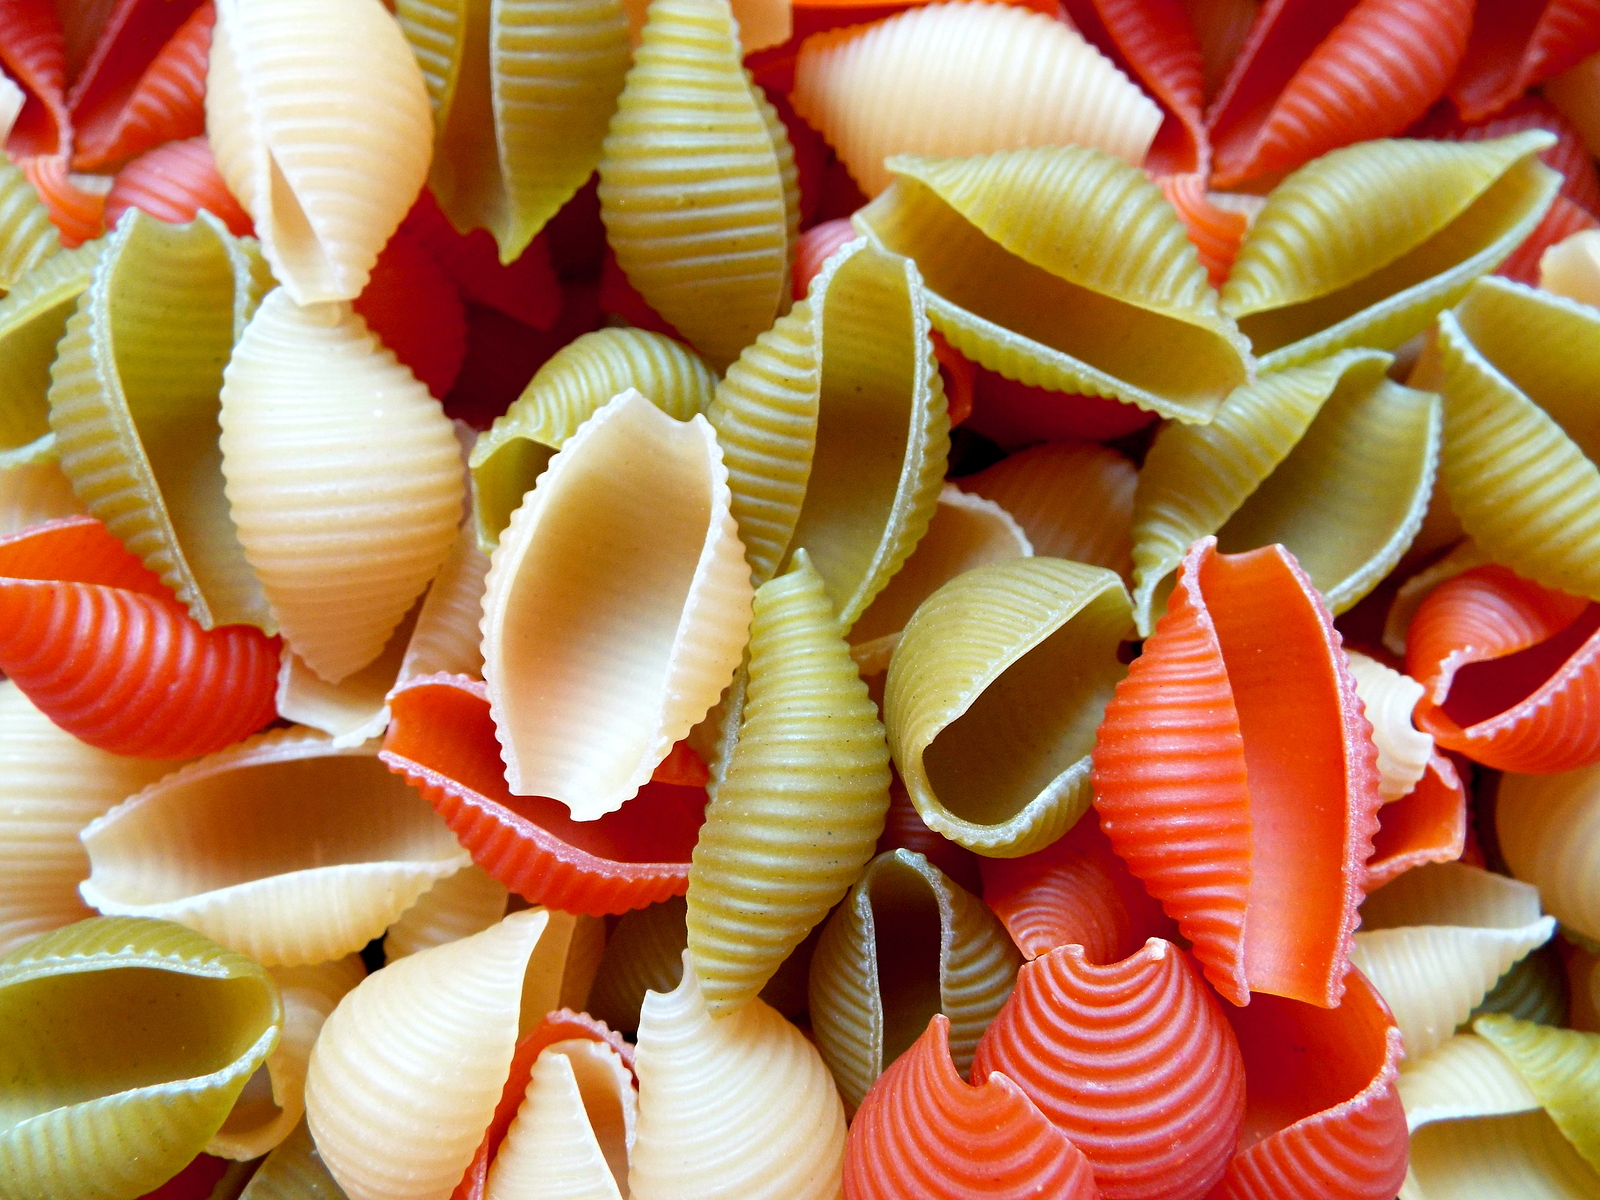 Pasta shells background. Multicolor Conchiglie shell Pasta Texture Pattern Background. Red green and yellow color pasta shells in market for sale. Macaroni shell pasta colorful pattern or background